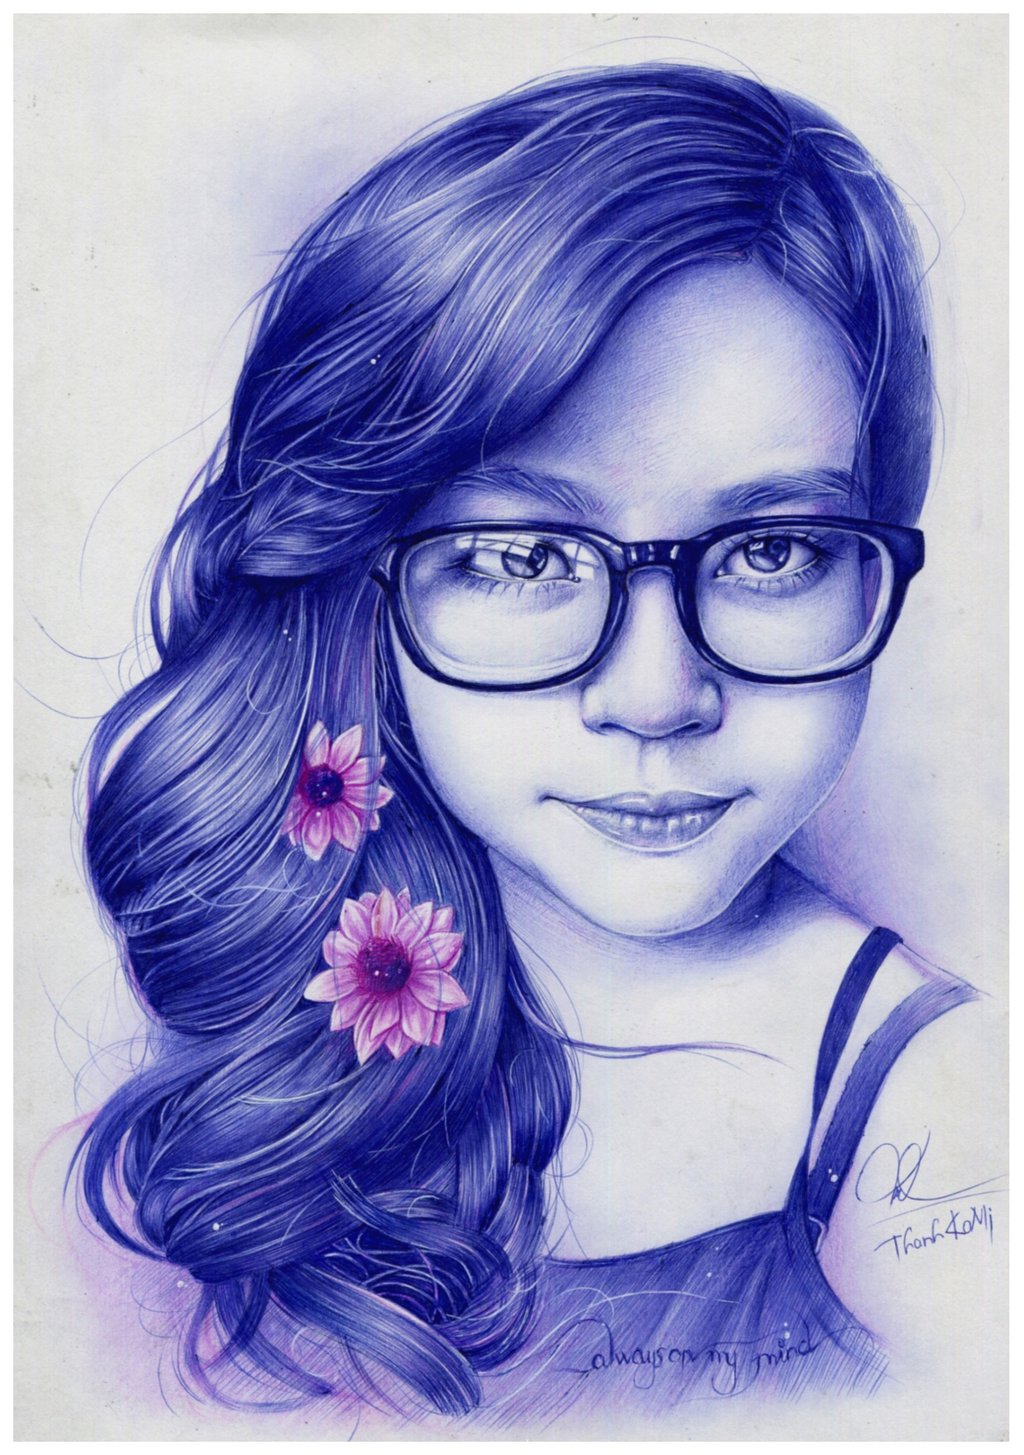 Drawn portrait ballpoint pen 0 drawing 3lineclaw VianaArts my